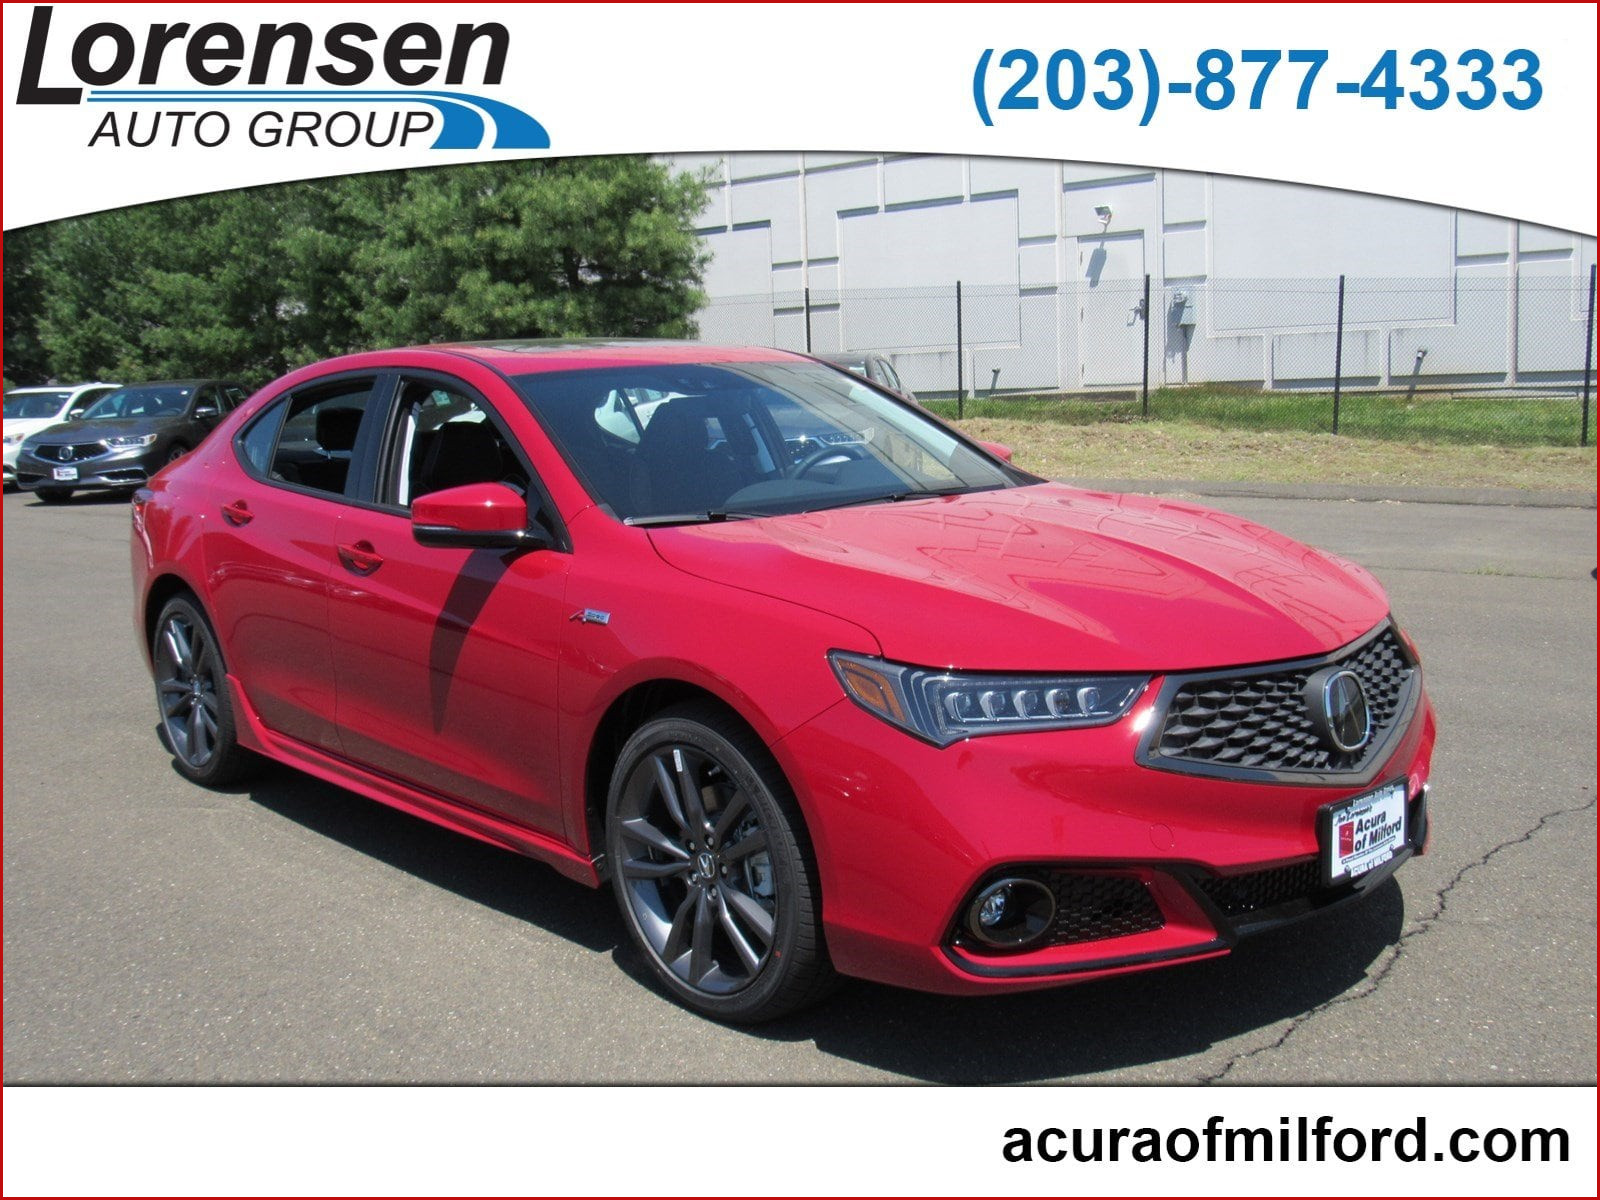 Acura Tlx Colors Acura Tlx Colors 7876 New 2019 Acura Tlx 3 5 V 6 9